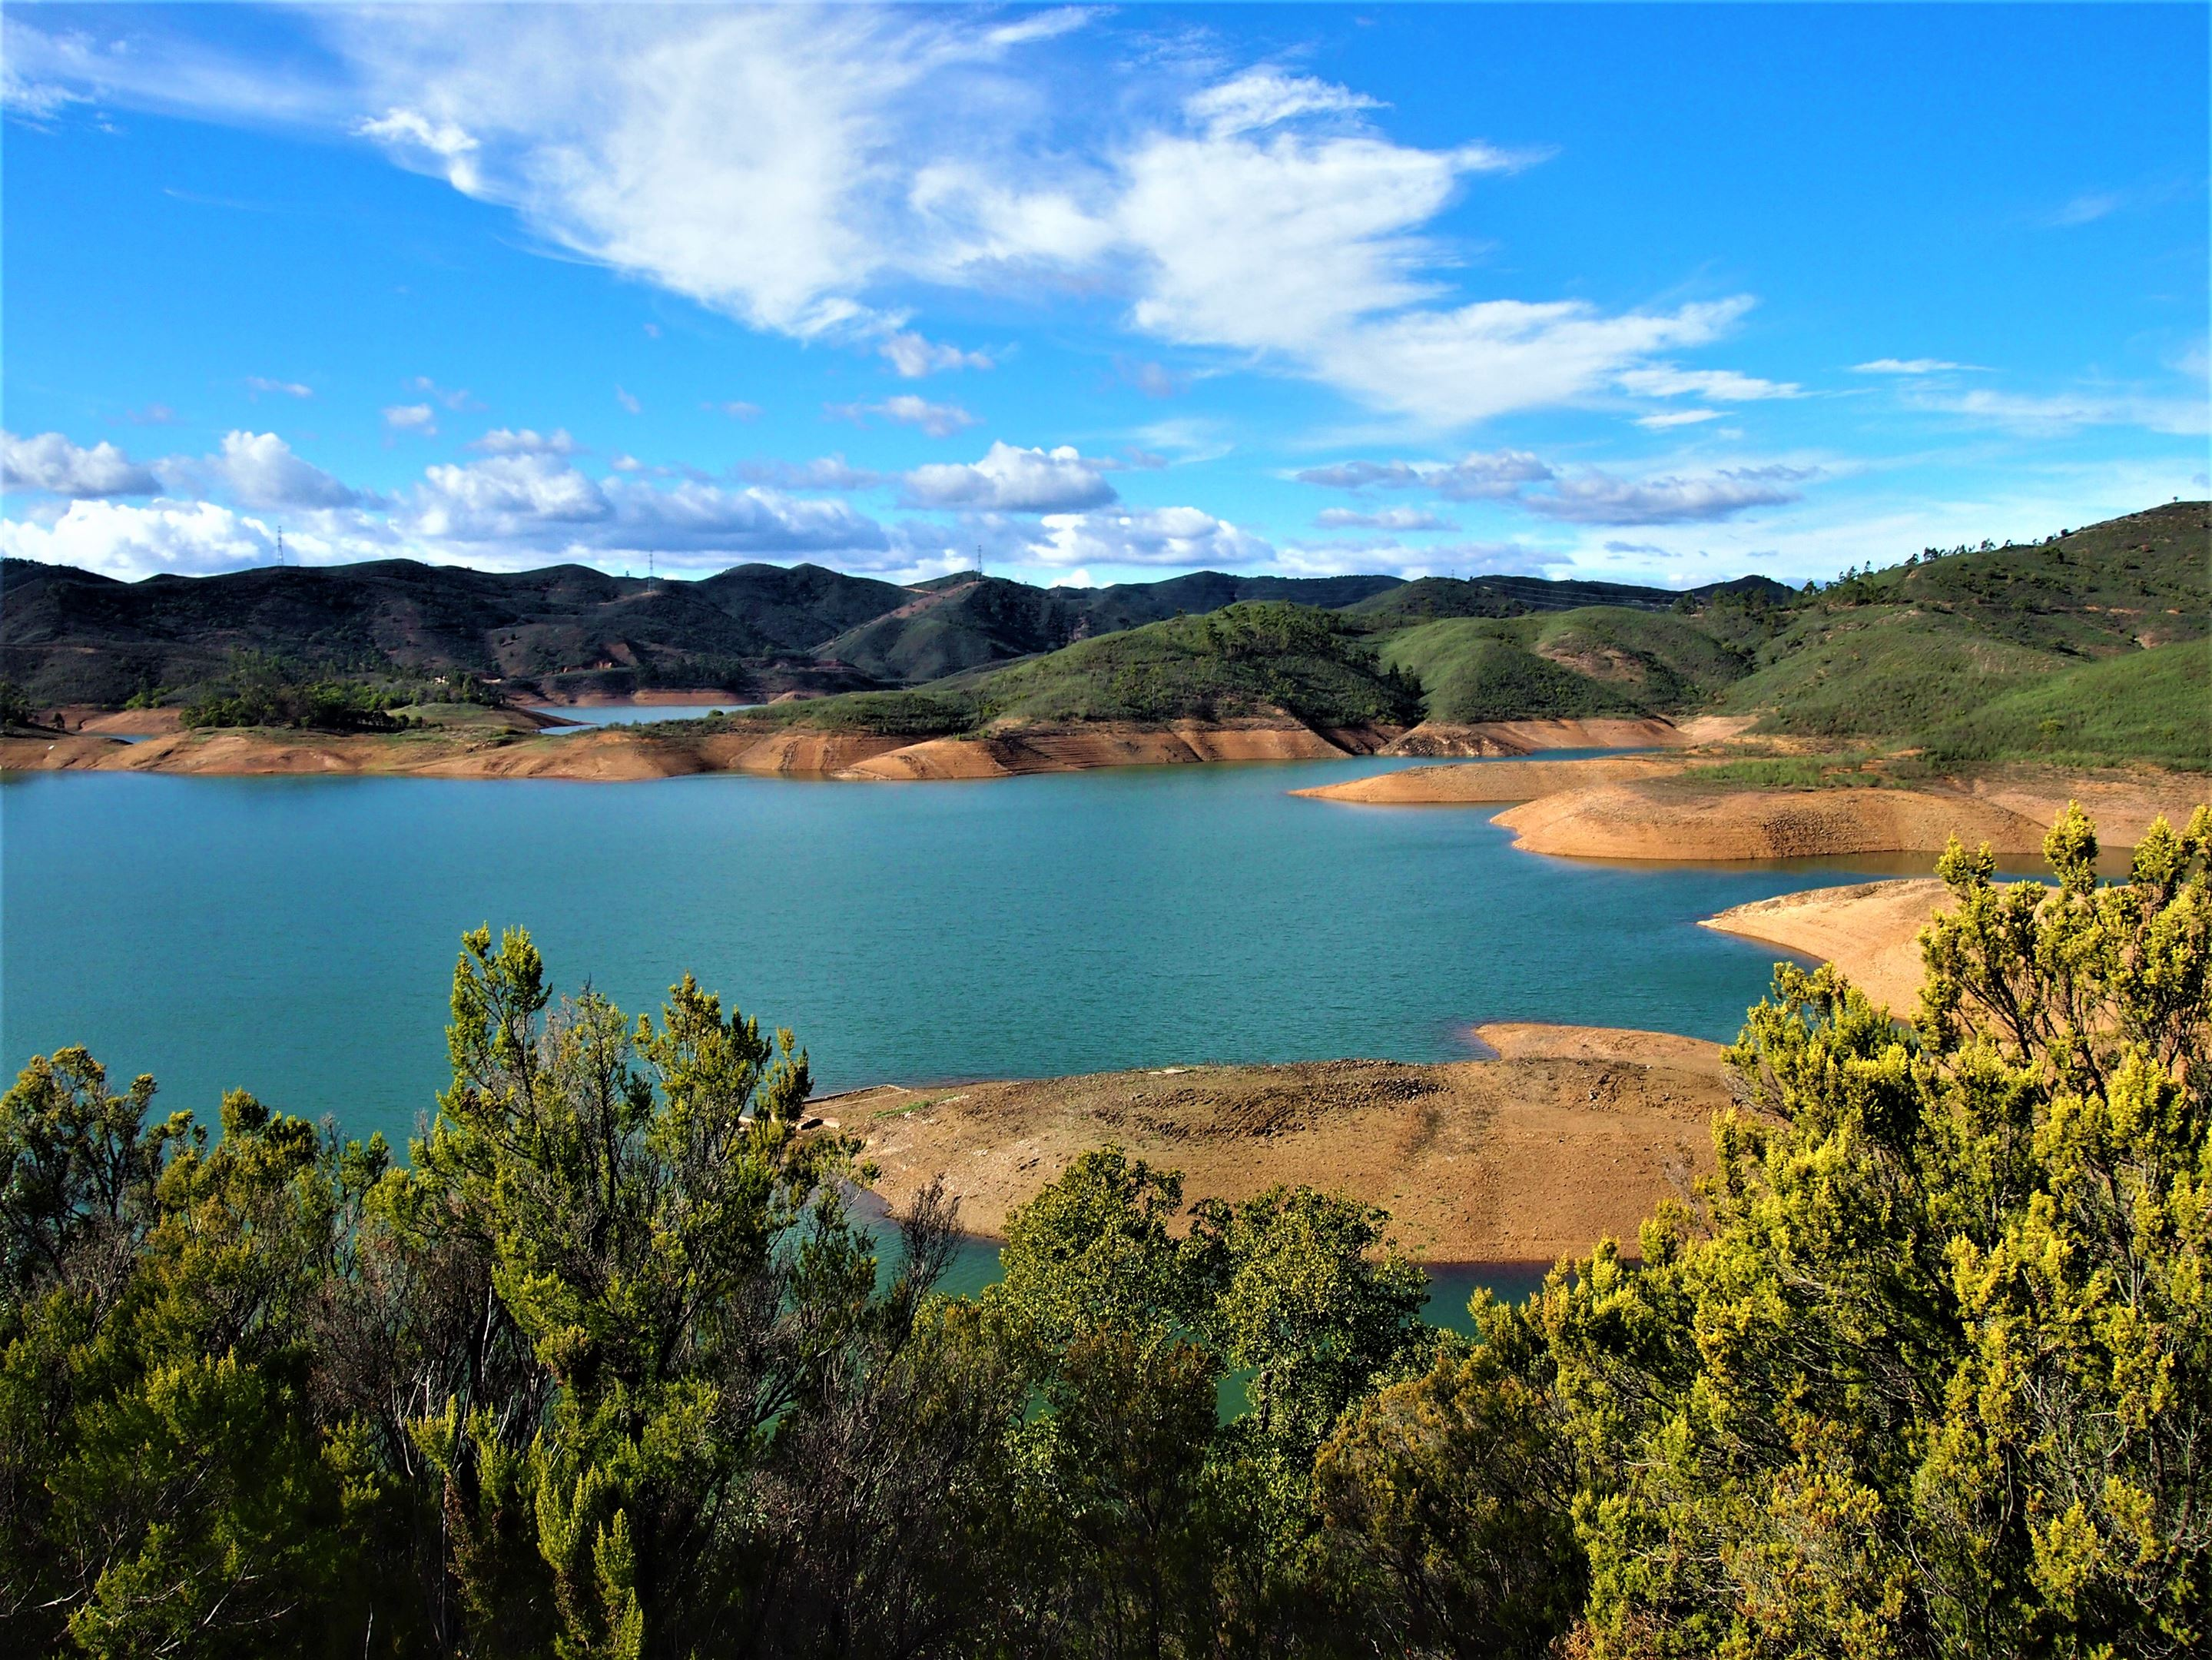 Barragem do Arade (